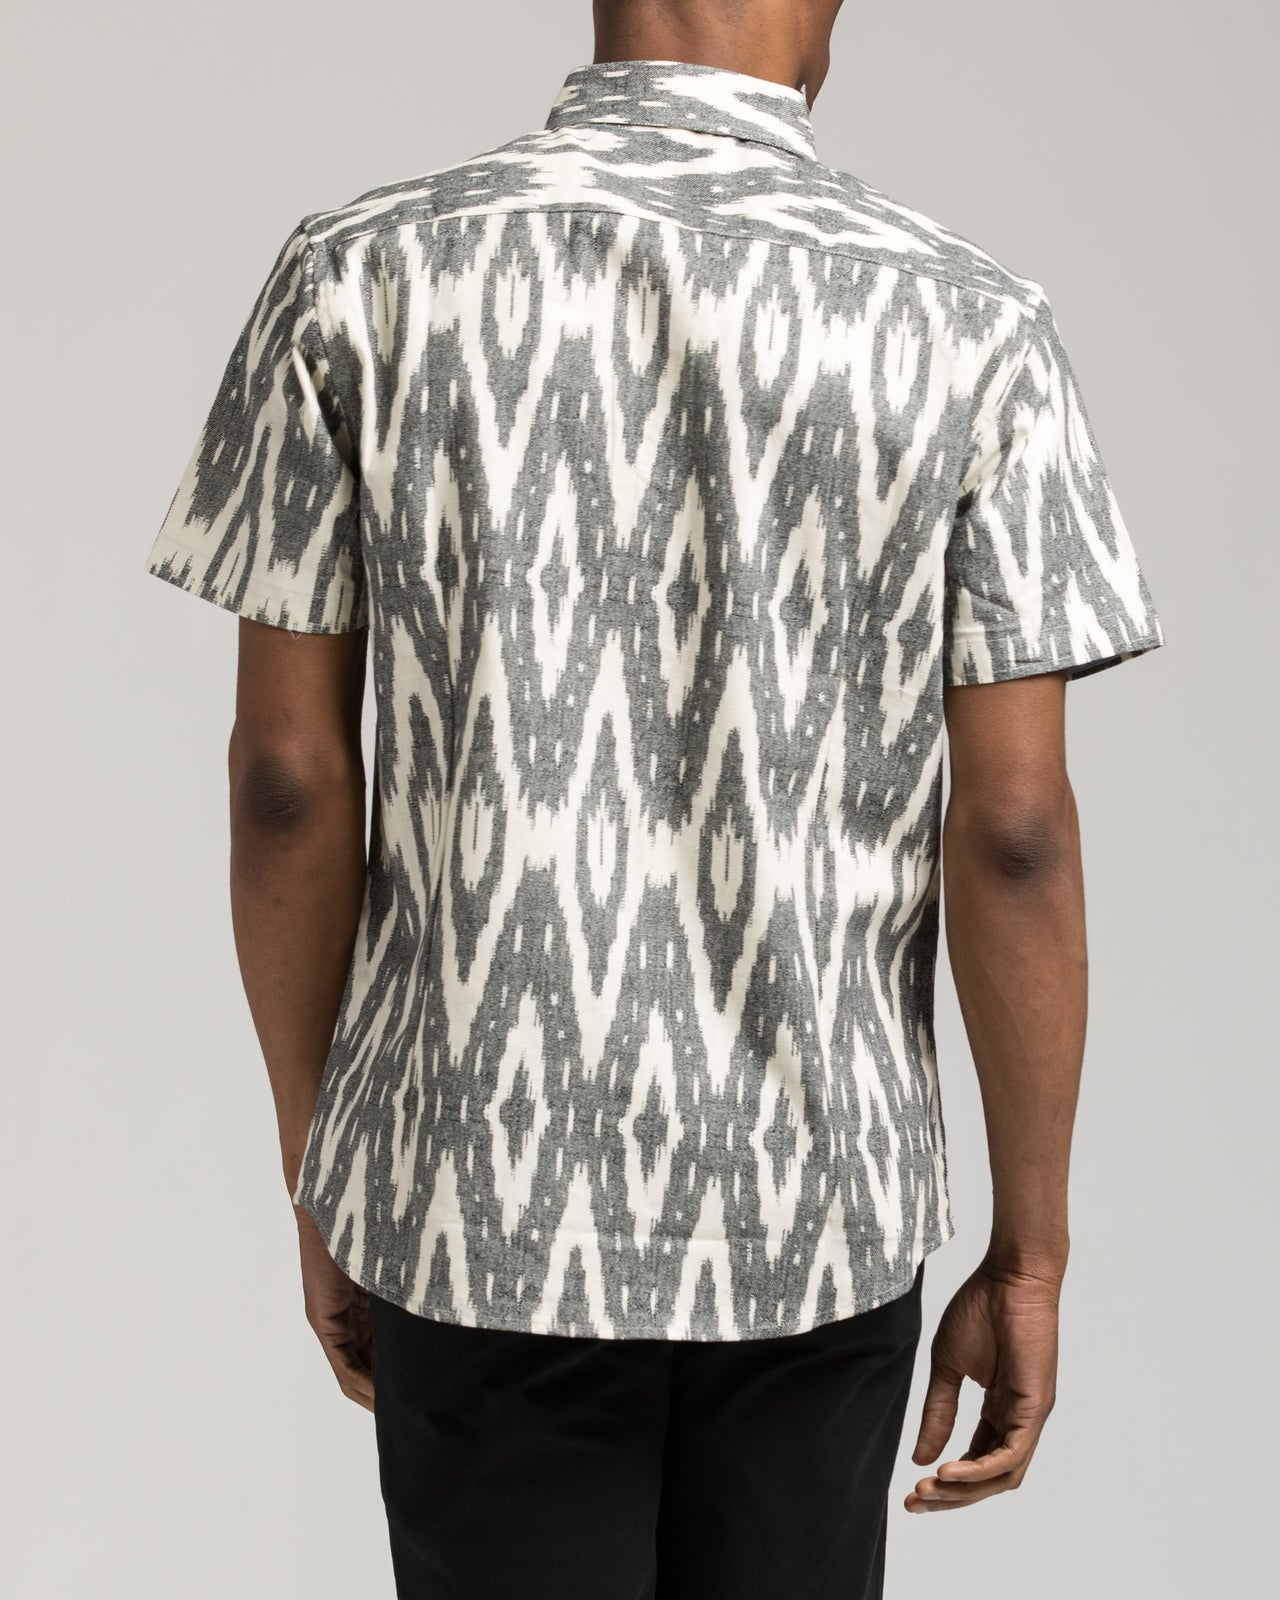 Short Sleeve Ikat Shirt - Color: White/Grey | White